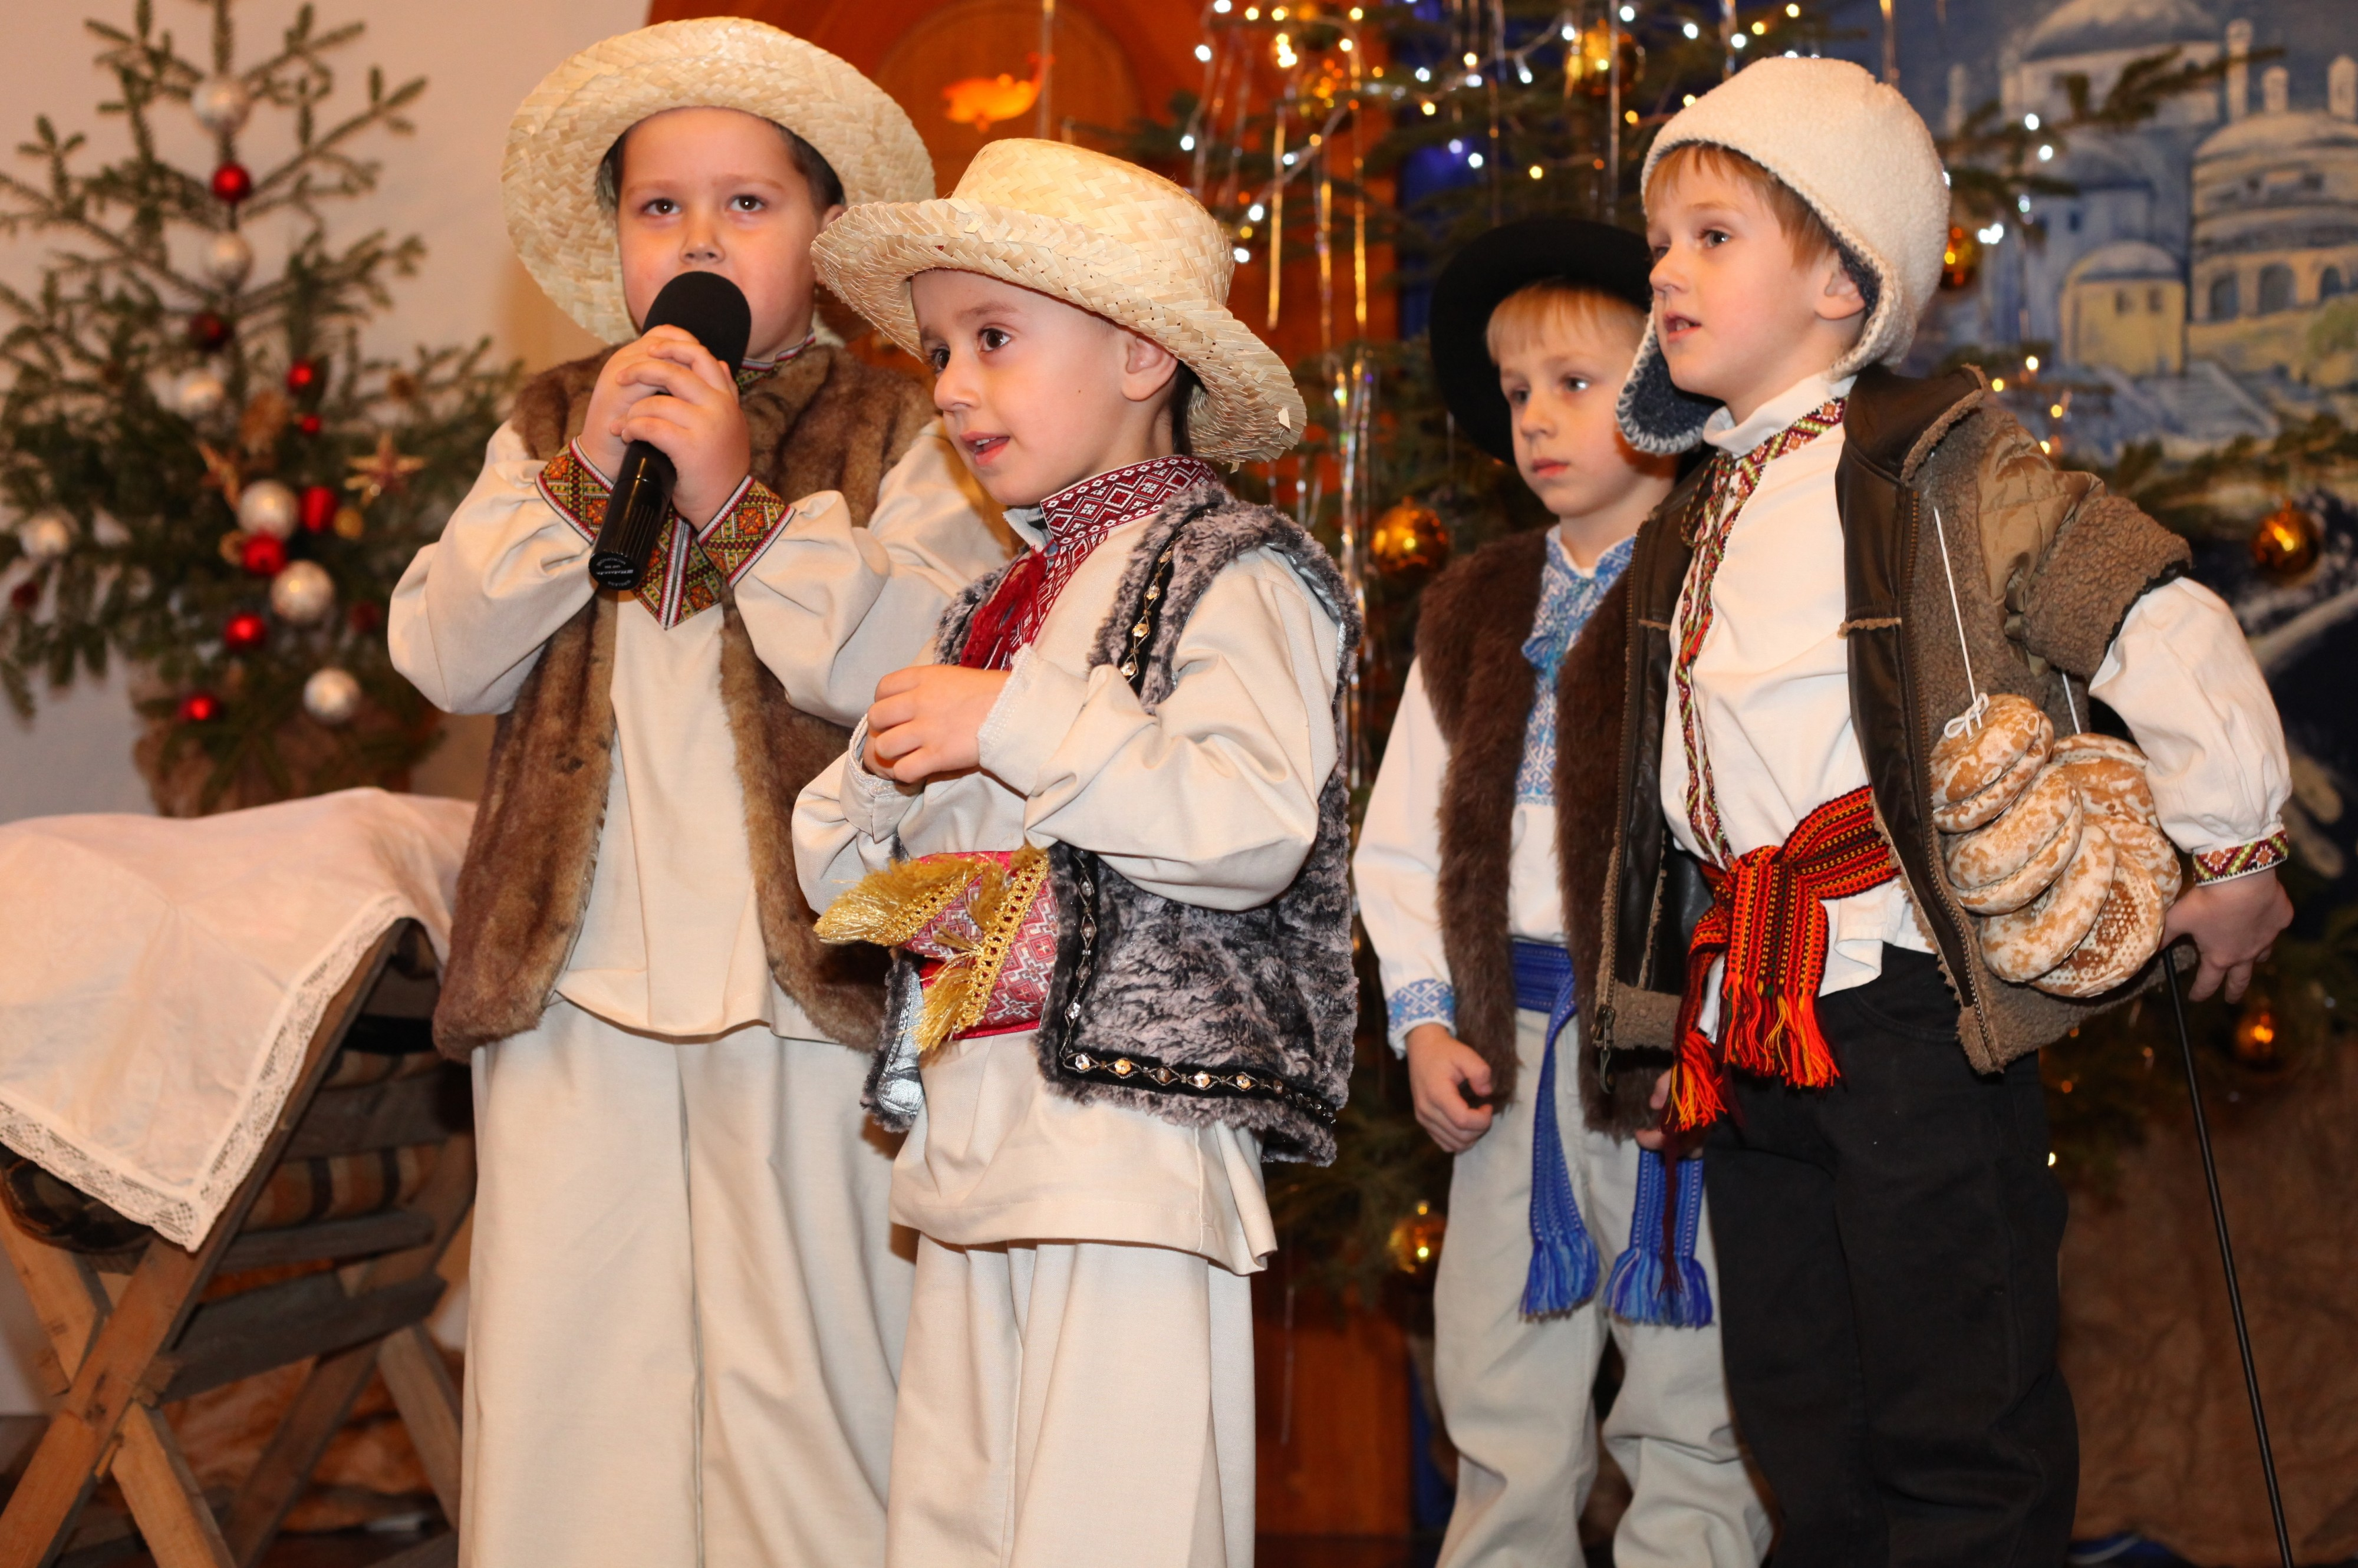 the nativity performance in a Catholic kindergarten, photo 2